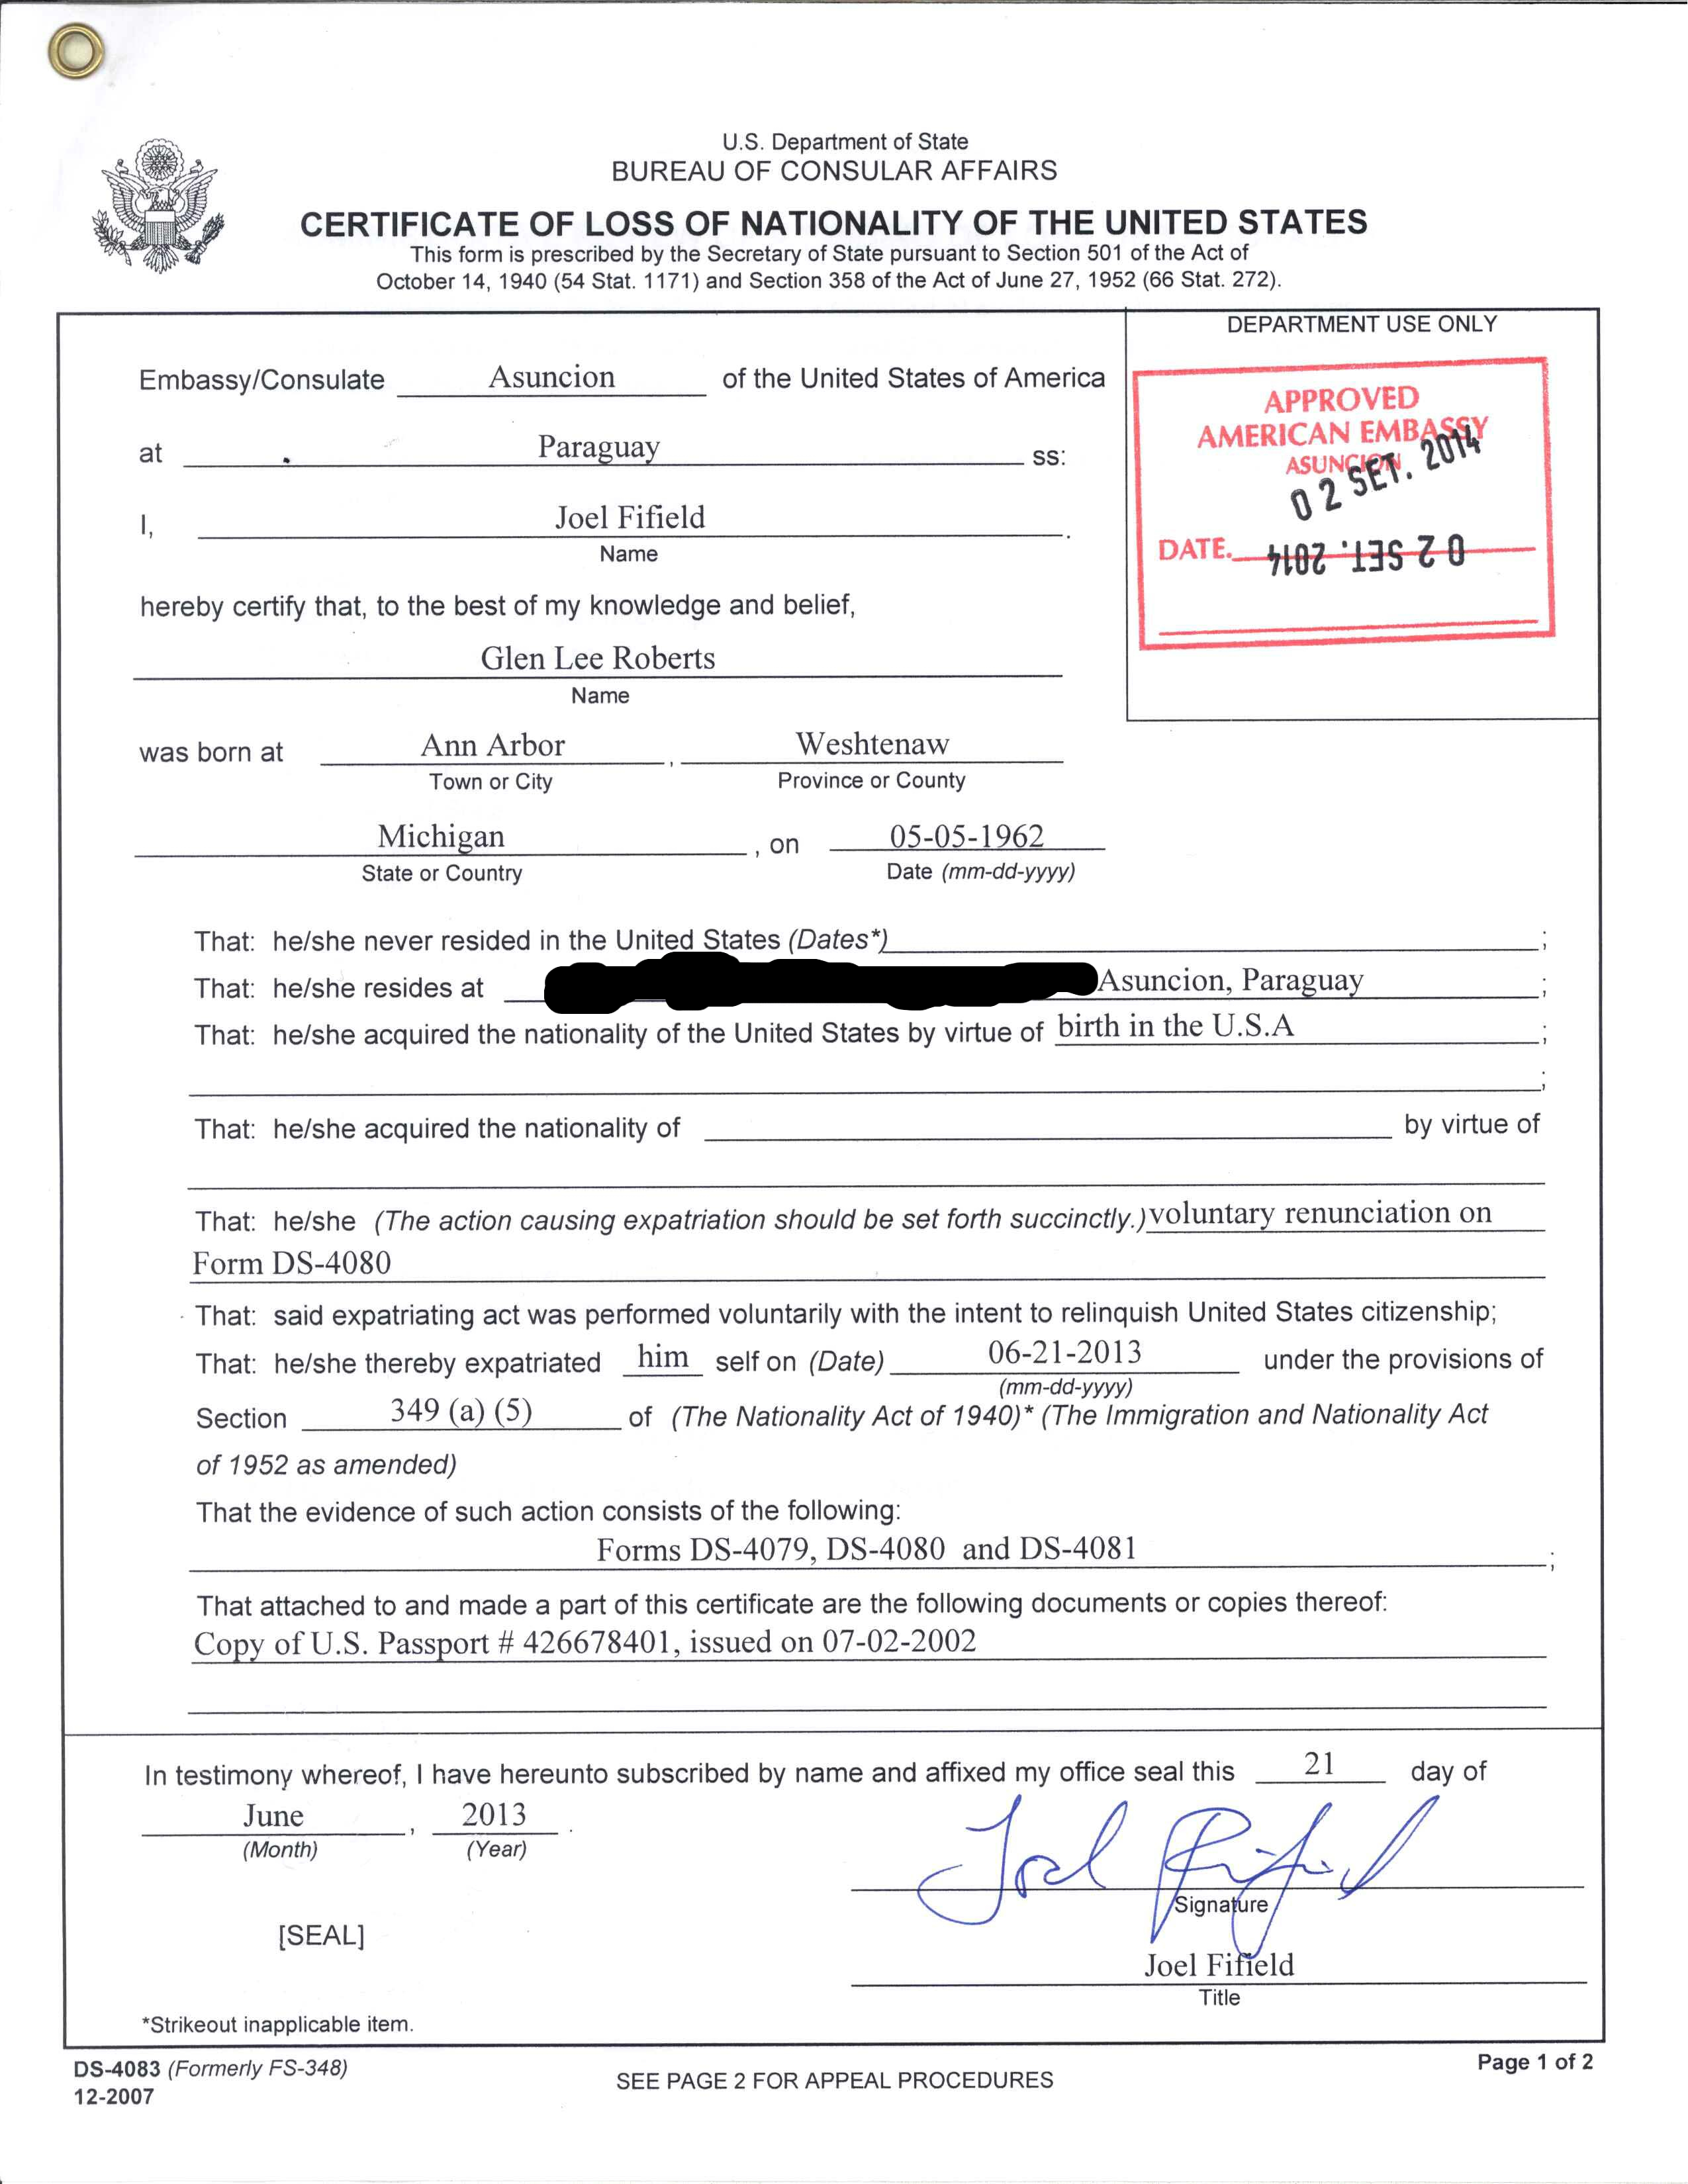 File Certificate Of Loss Of Nationality Of The United